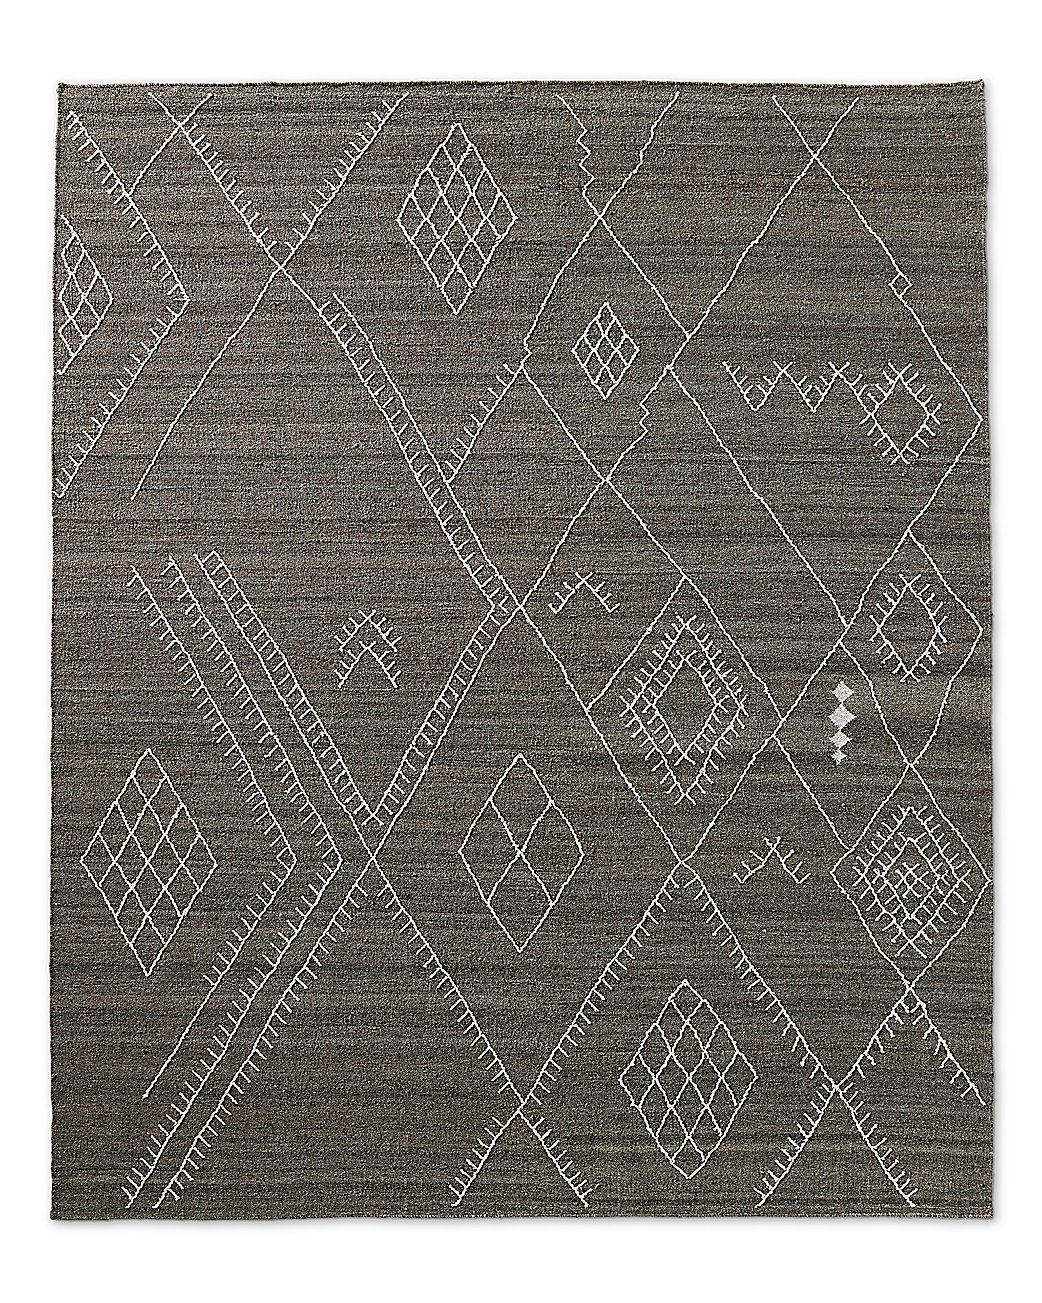 Sarto Embroidered Flatweave Rug - Charcoal